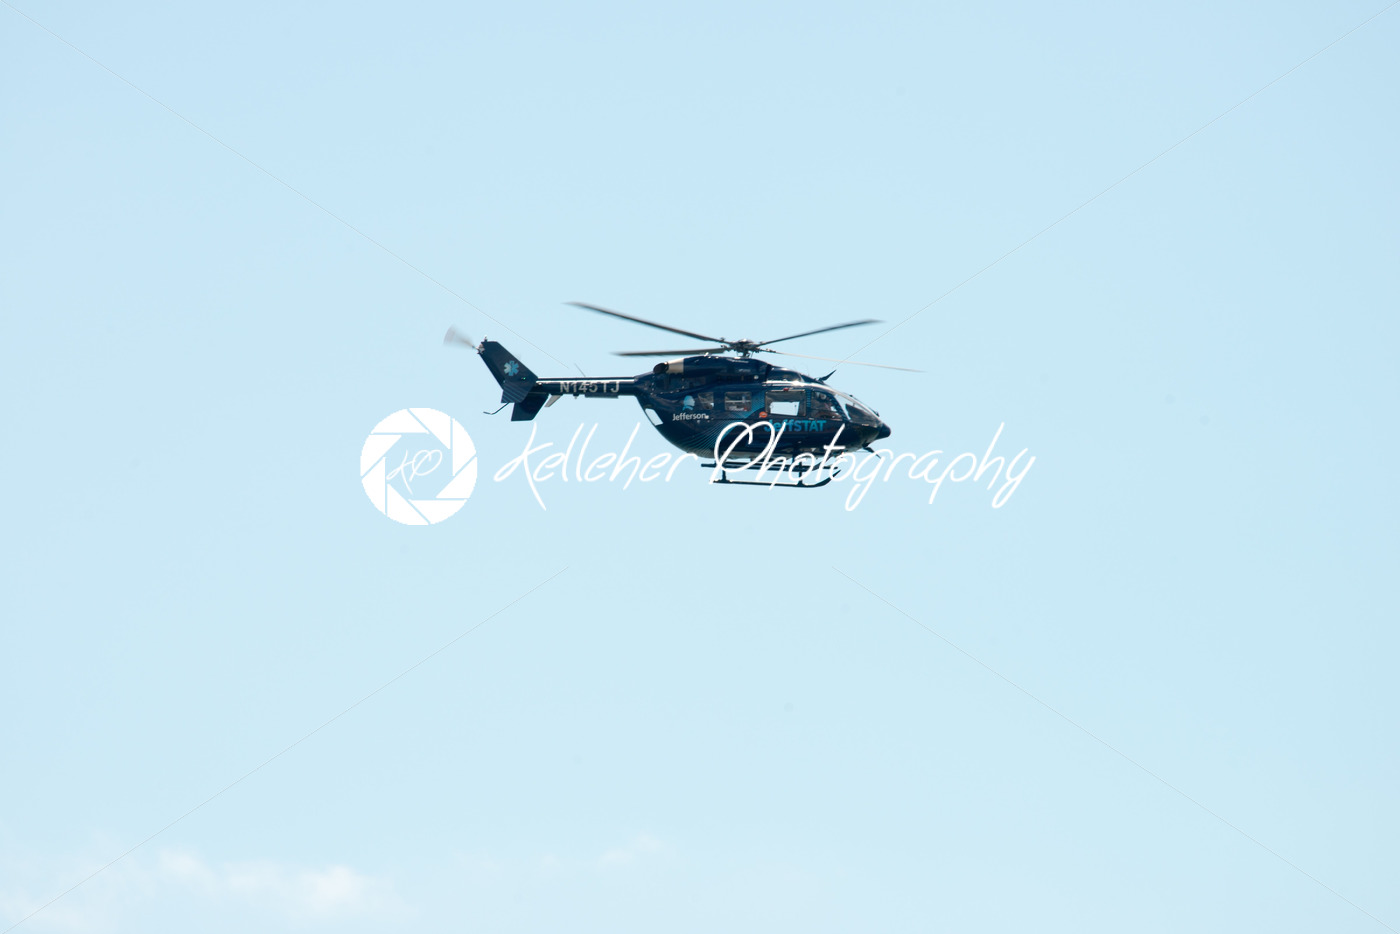 ATLANTIC CITY, NJ – AUGUST 17: Jeffstat Helicopter at Annual Atlantic City Air Show on August 17, 2016 - Kelleher Photography Store